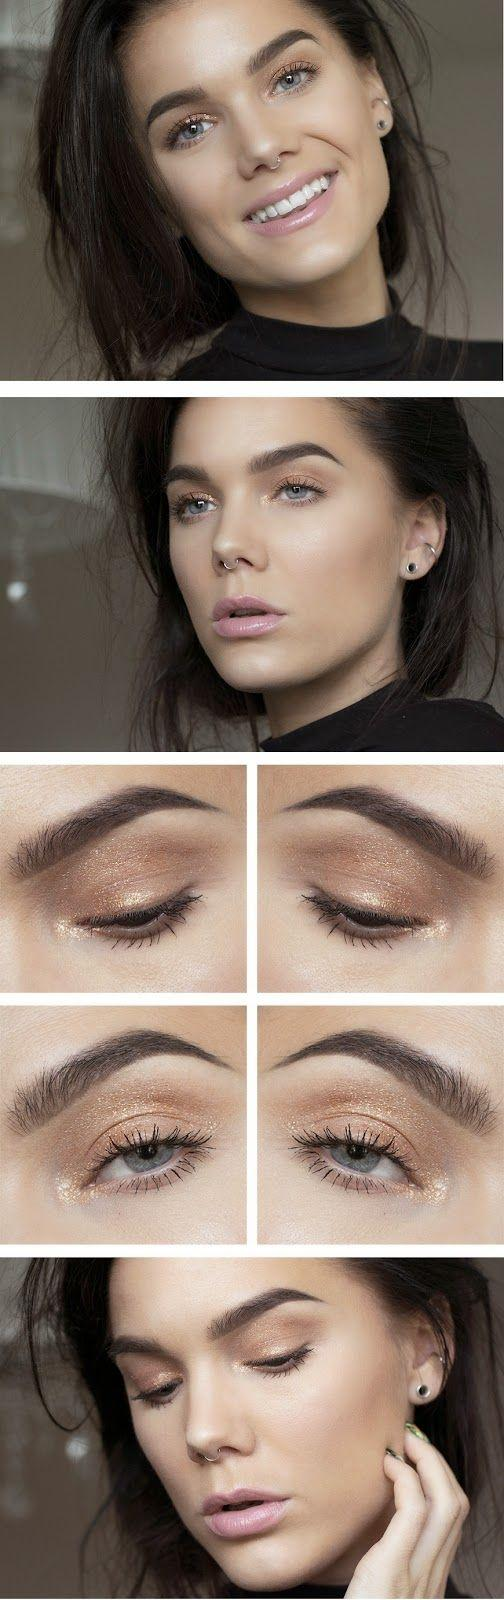 Wedding - How To Chic: GOLD SEQUIN EYESHADOW MAKE UP BY LINDA HALLBERG